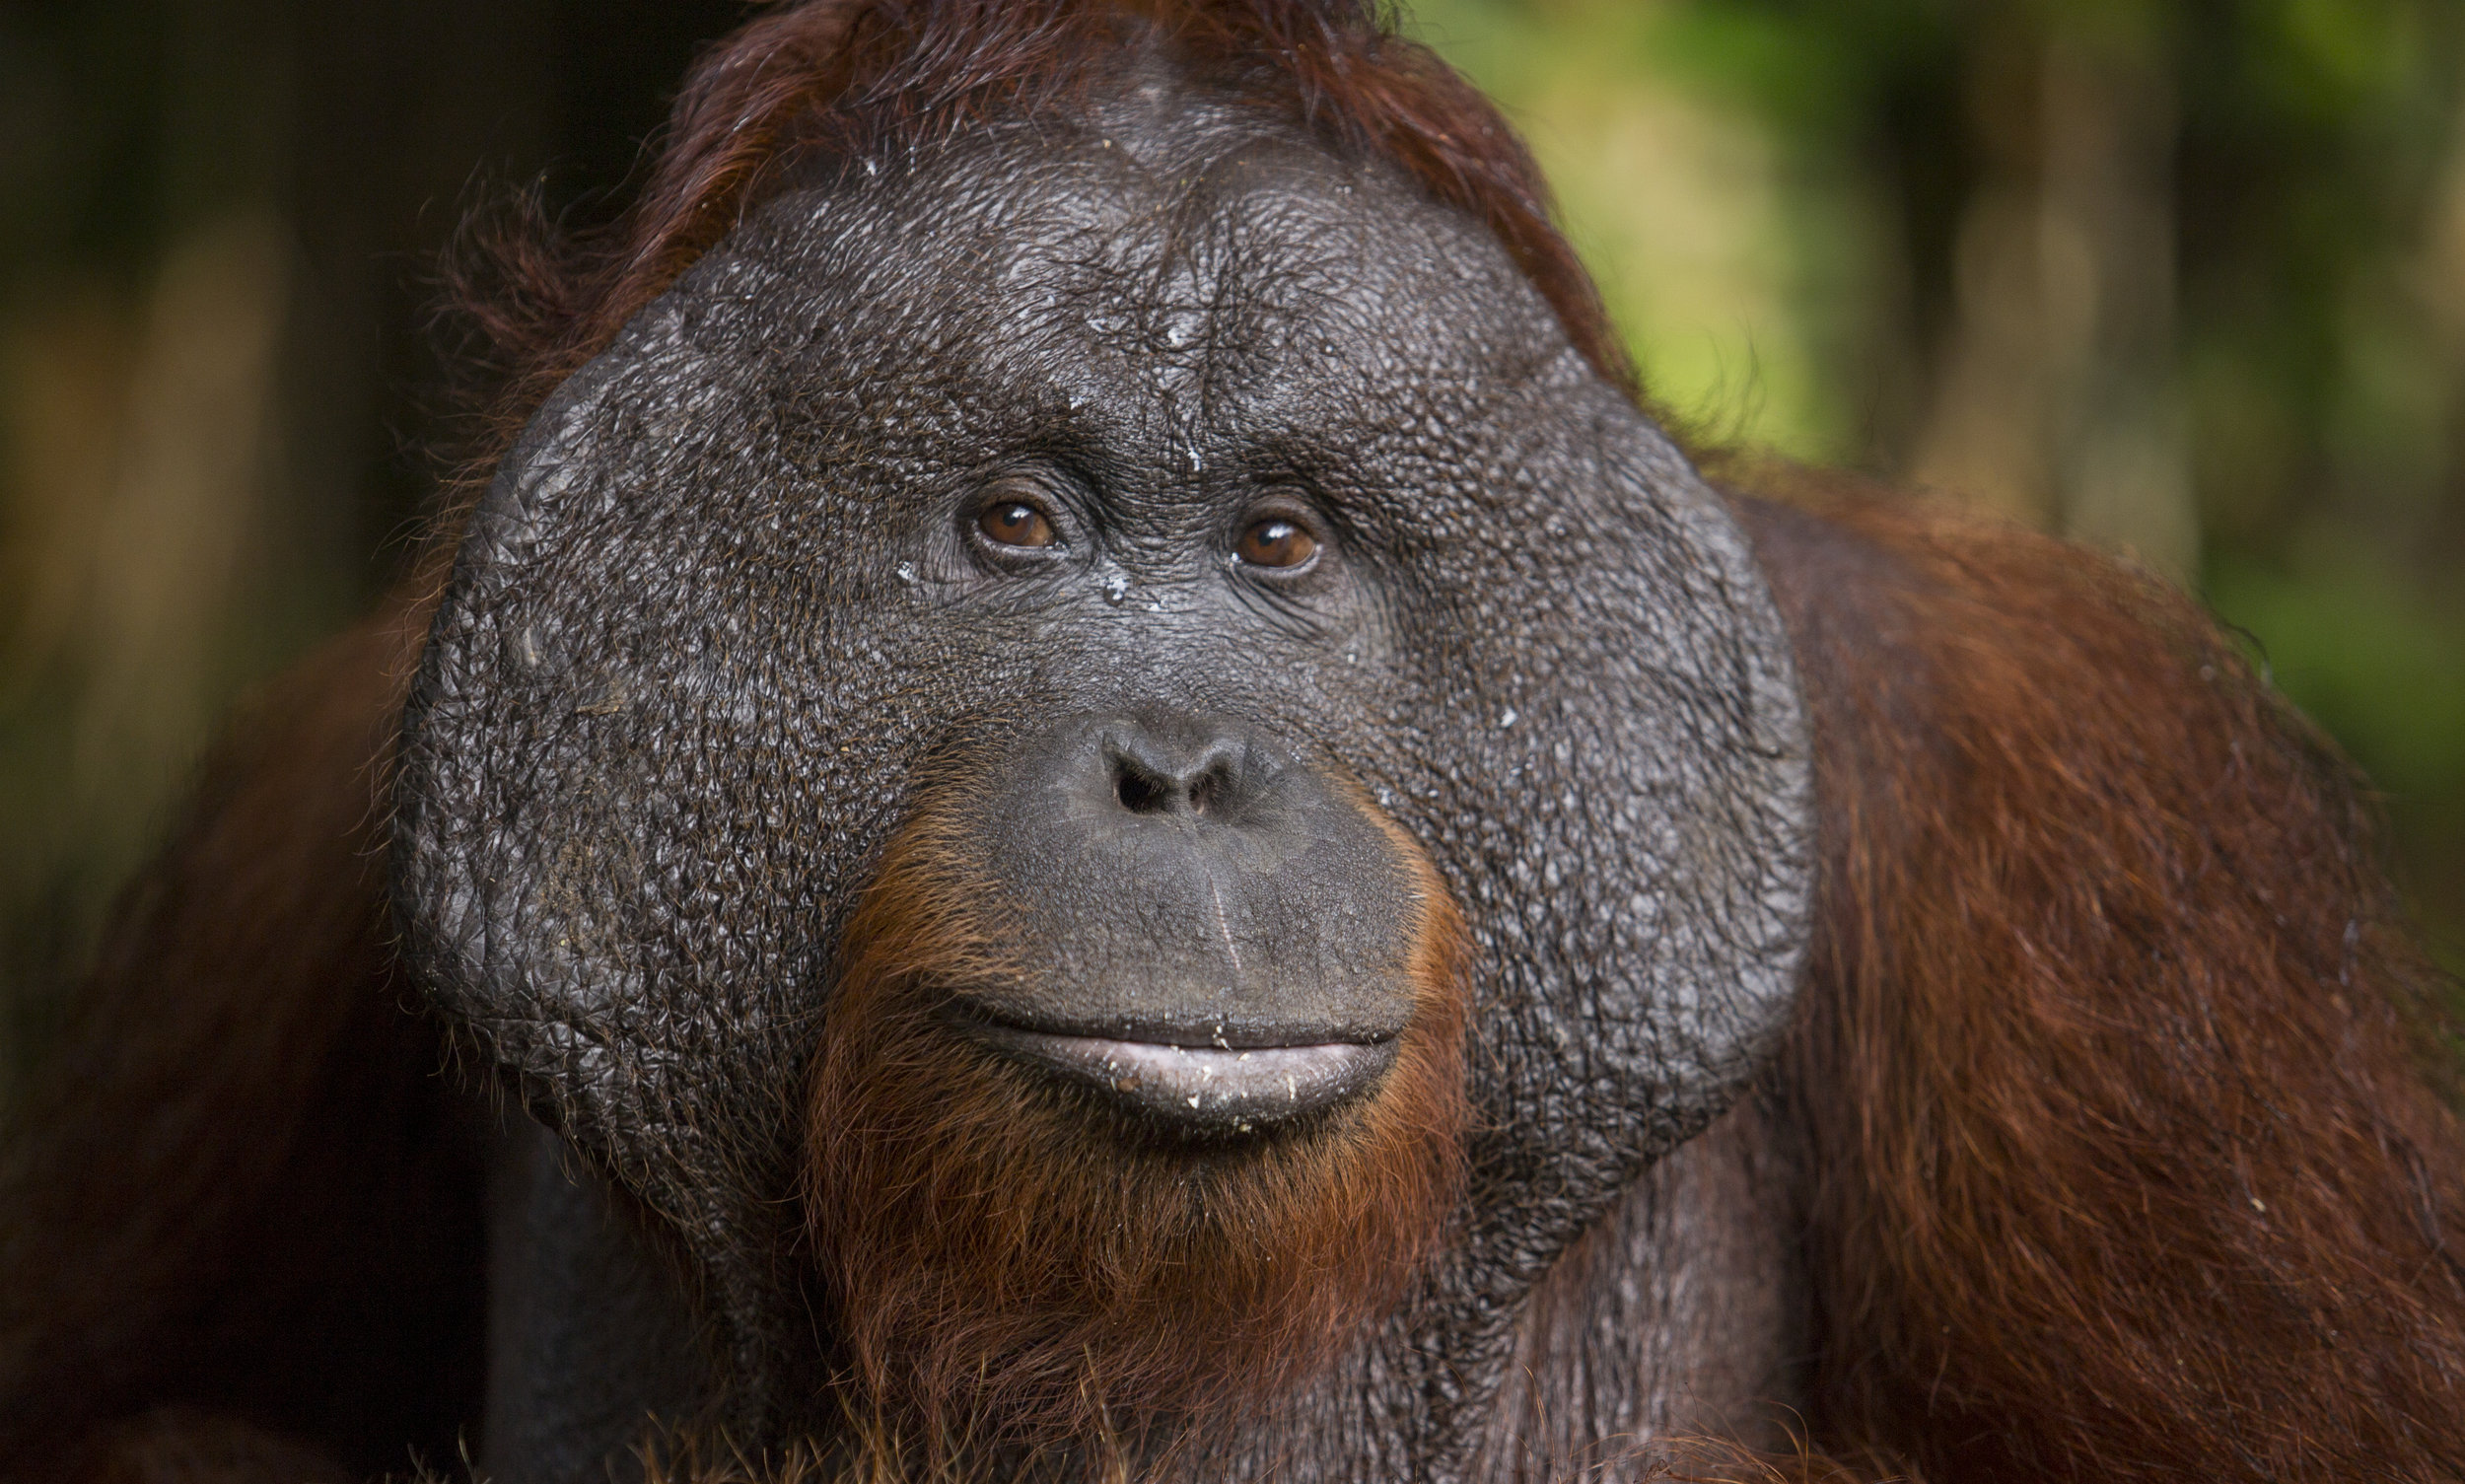 ©Bain. Adult male orangutans can grow cheek pads, or flanges.